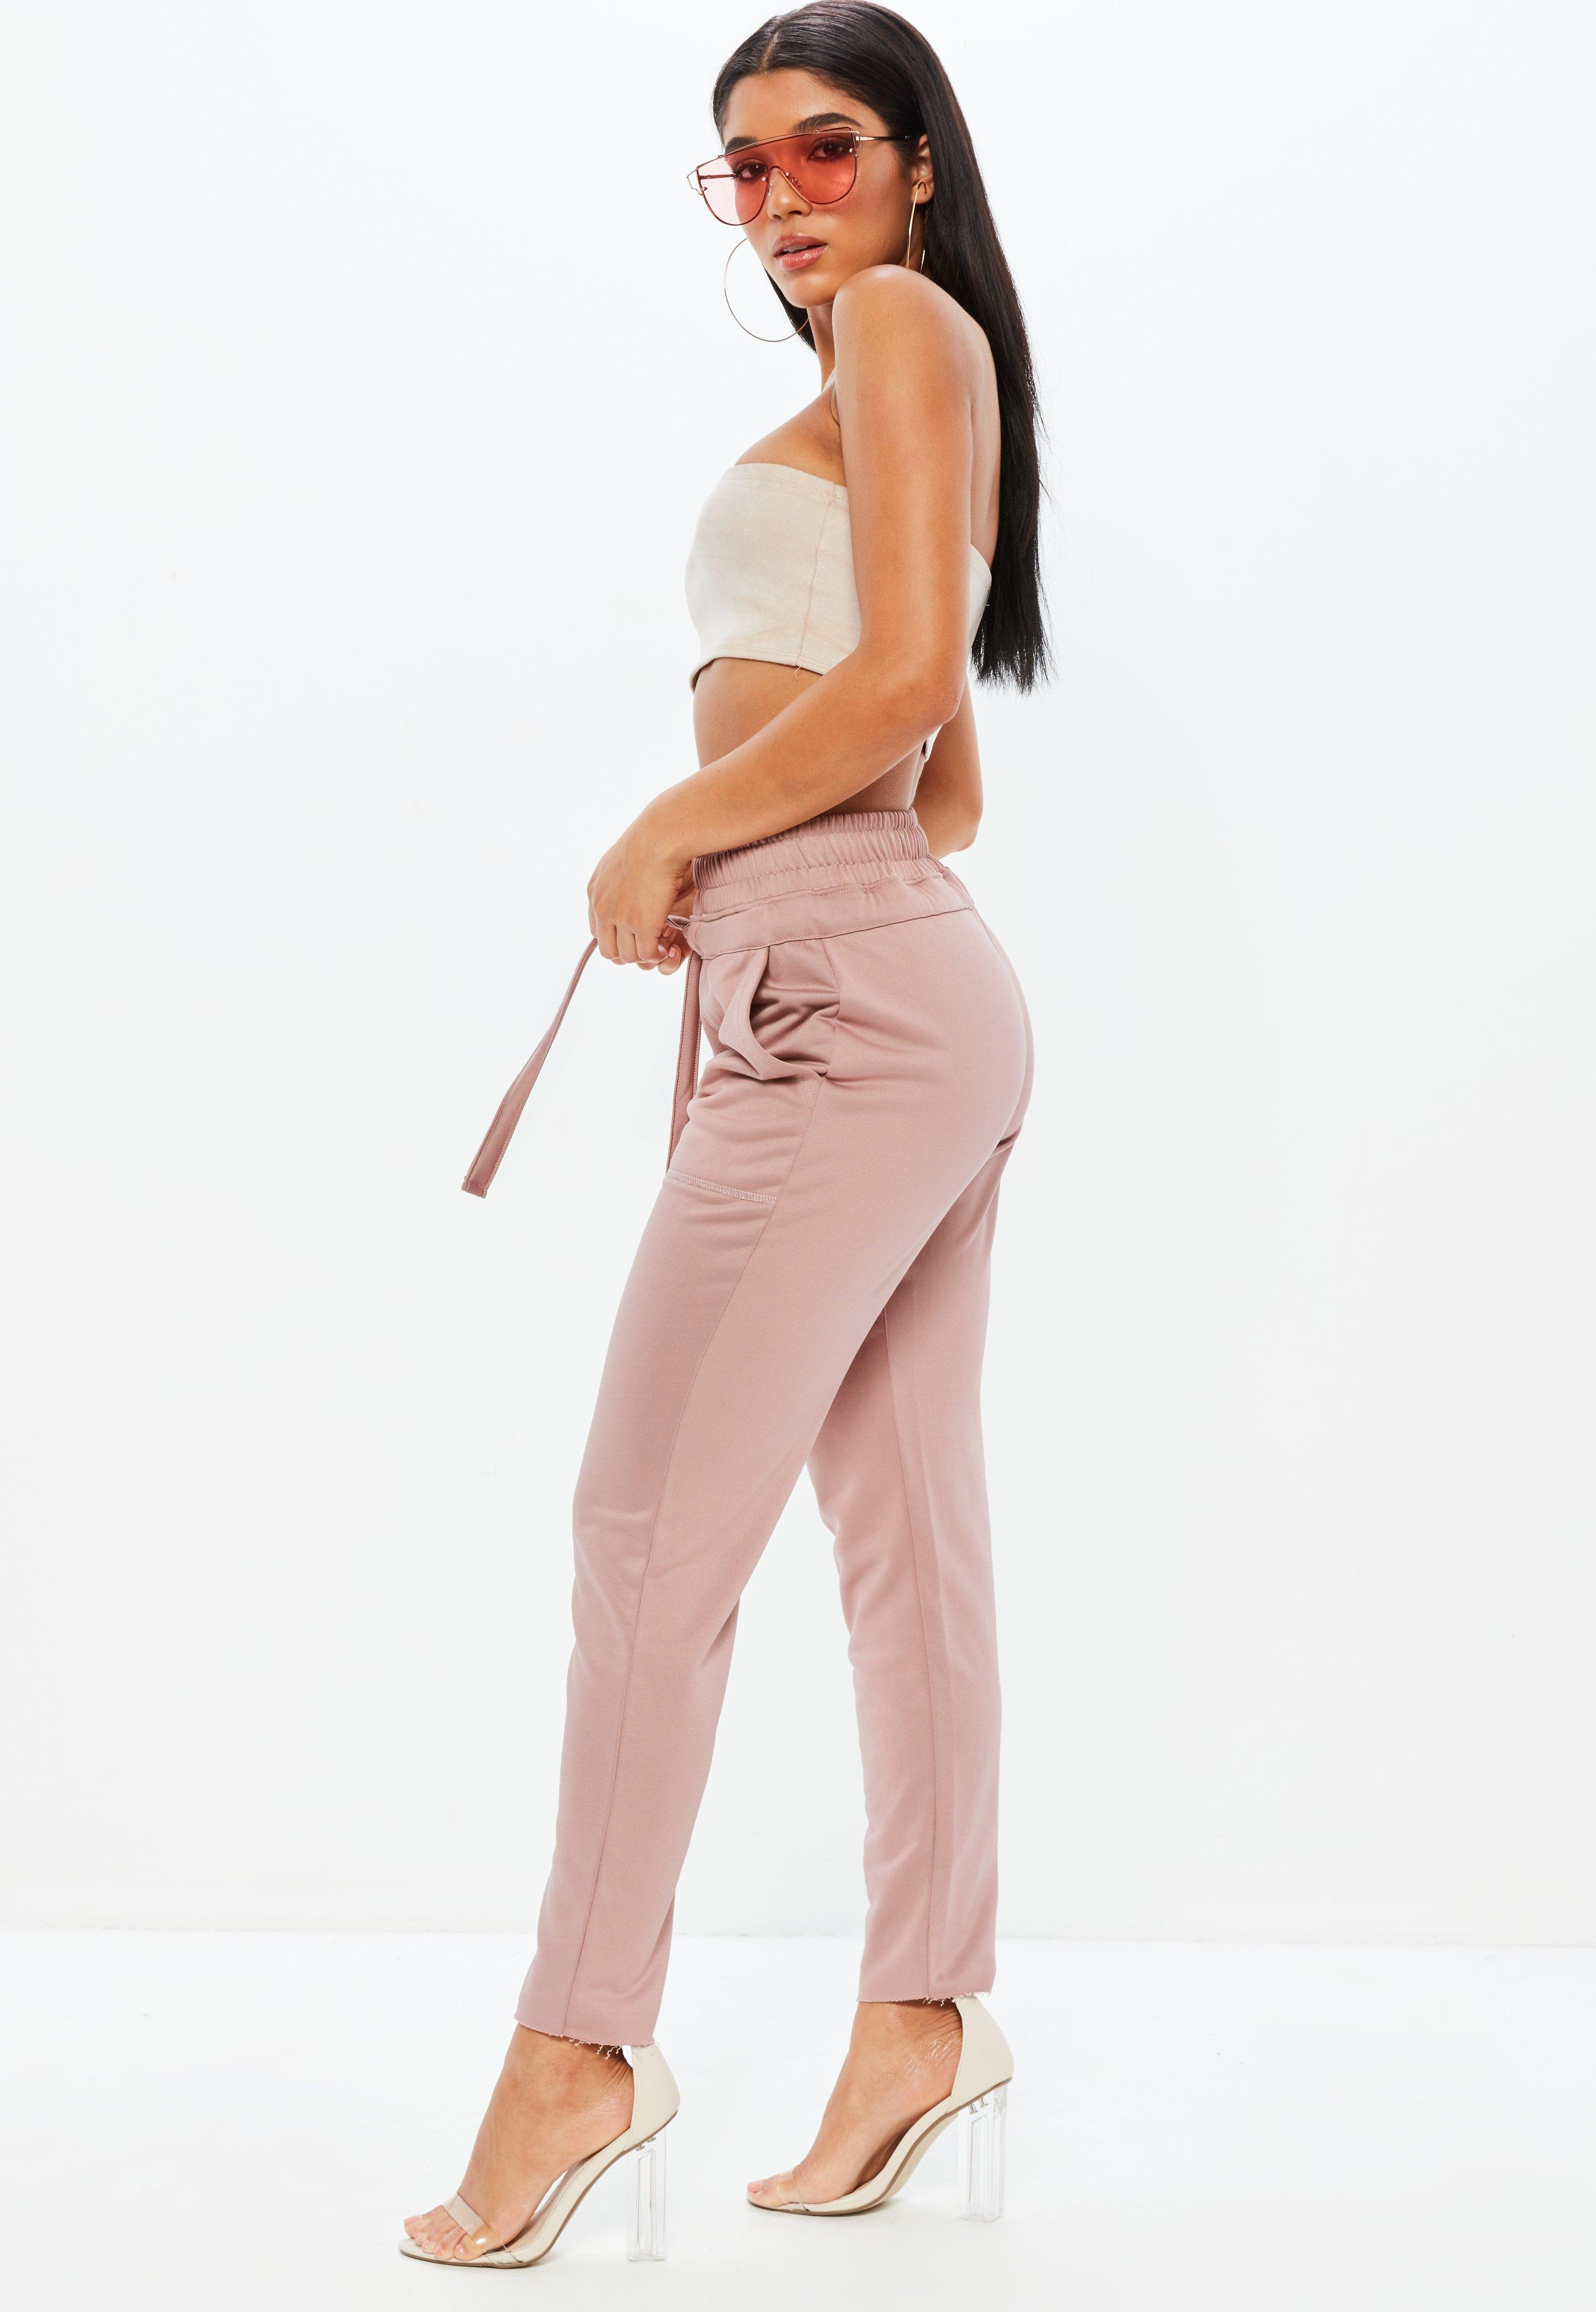 Missguided Rose Low Slung Joggers Free Shipping For Sale Buy Cheap Very Cheap 2018 Online Best Prices Cheap Price Countdown Package Cheap Price cQoo1eC